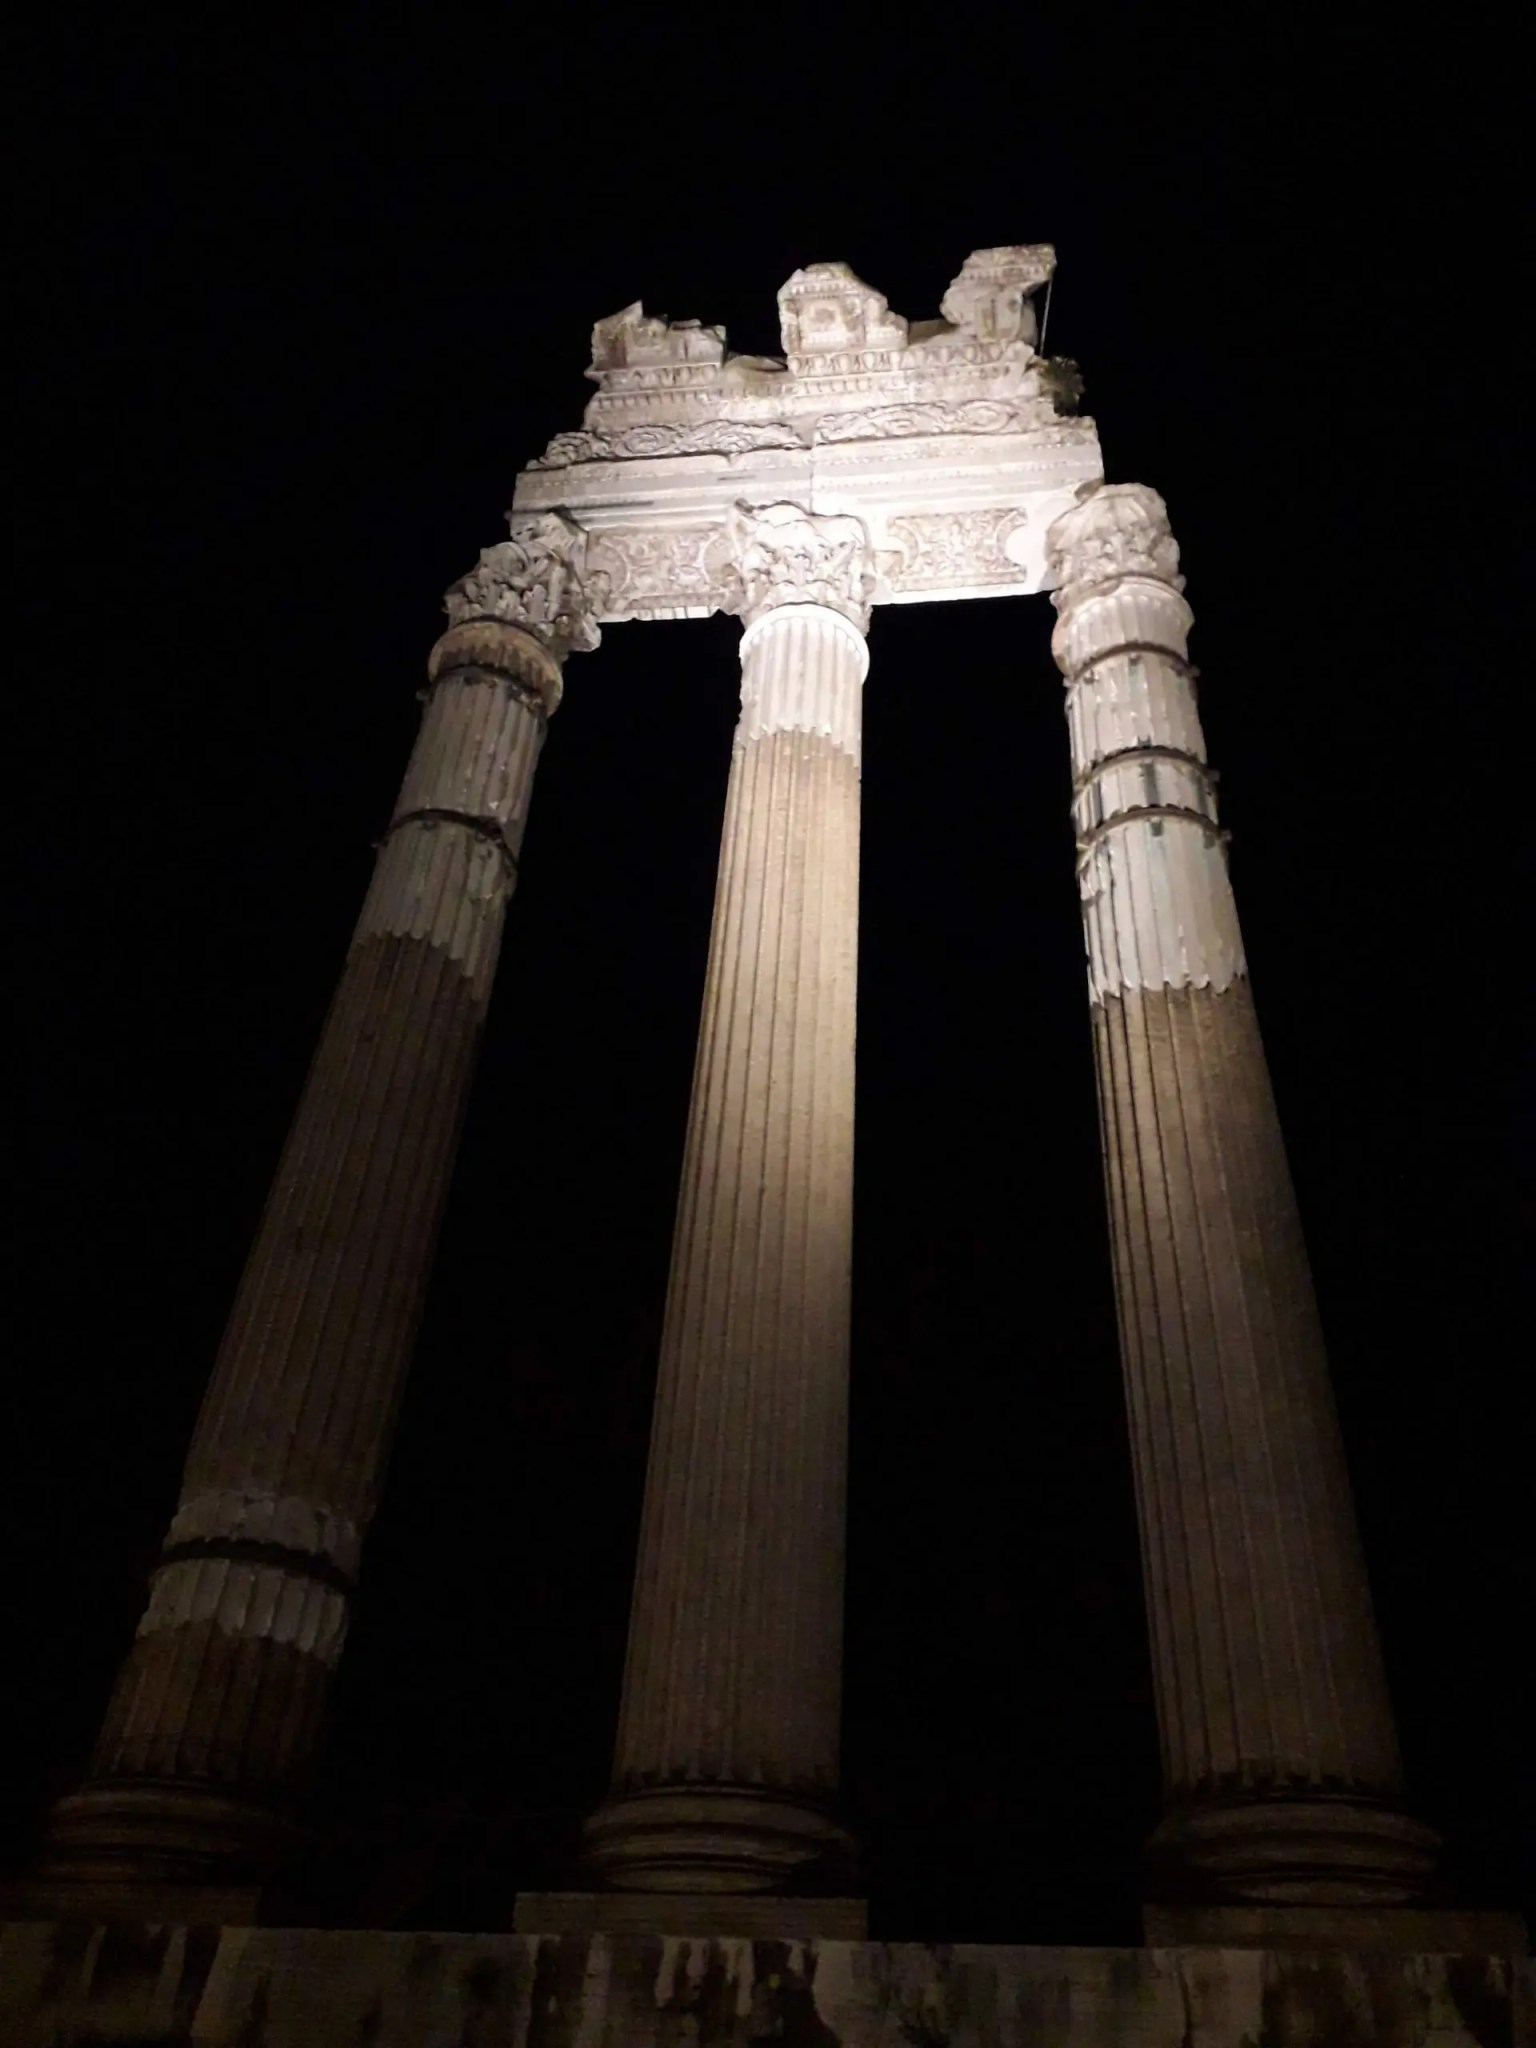 Caesar's Forum at night, Rome, Italy, Travel